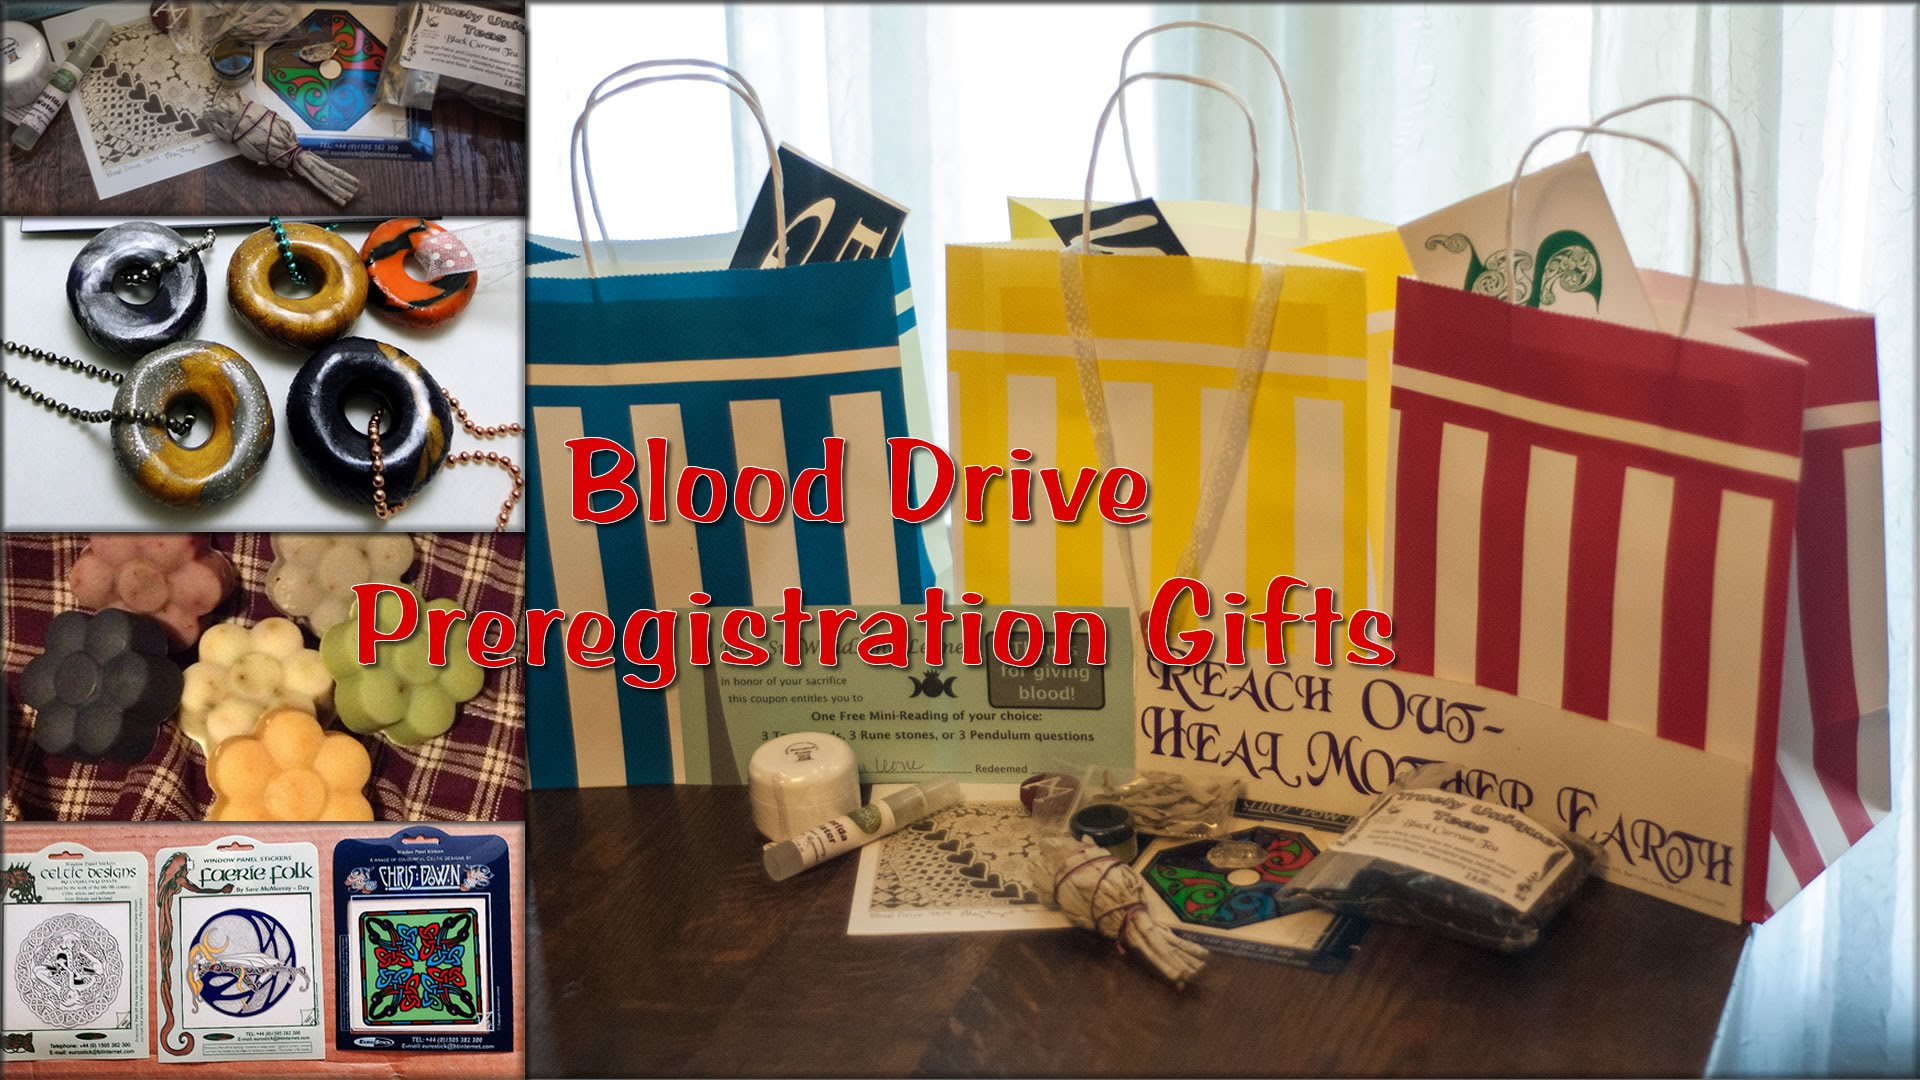 Blood Drive Preregistration Gifts